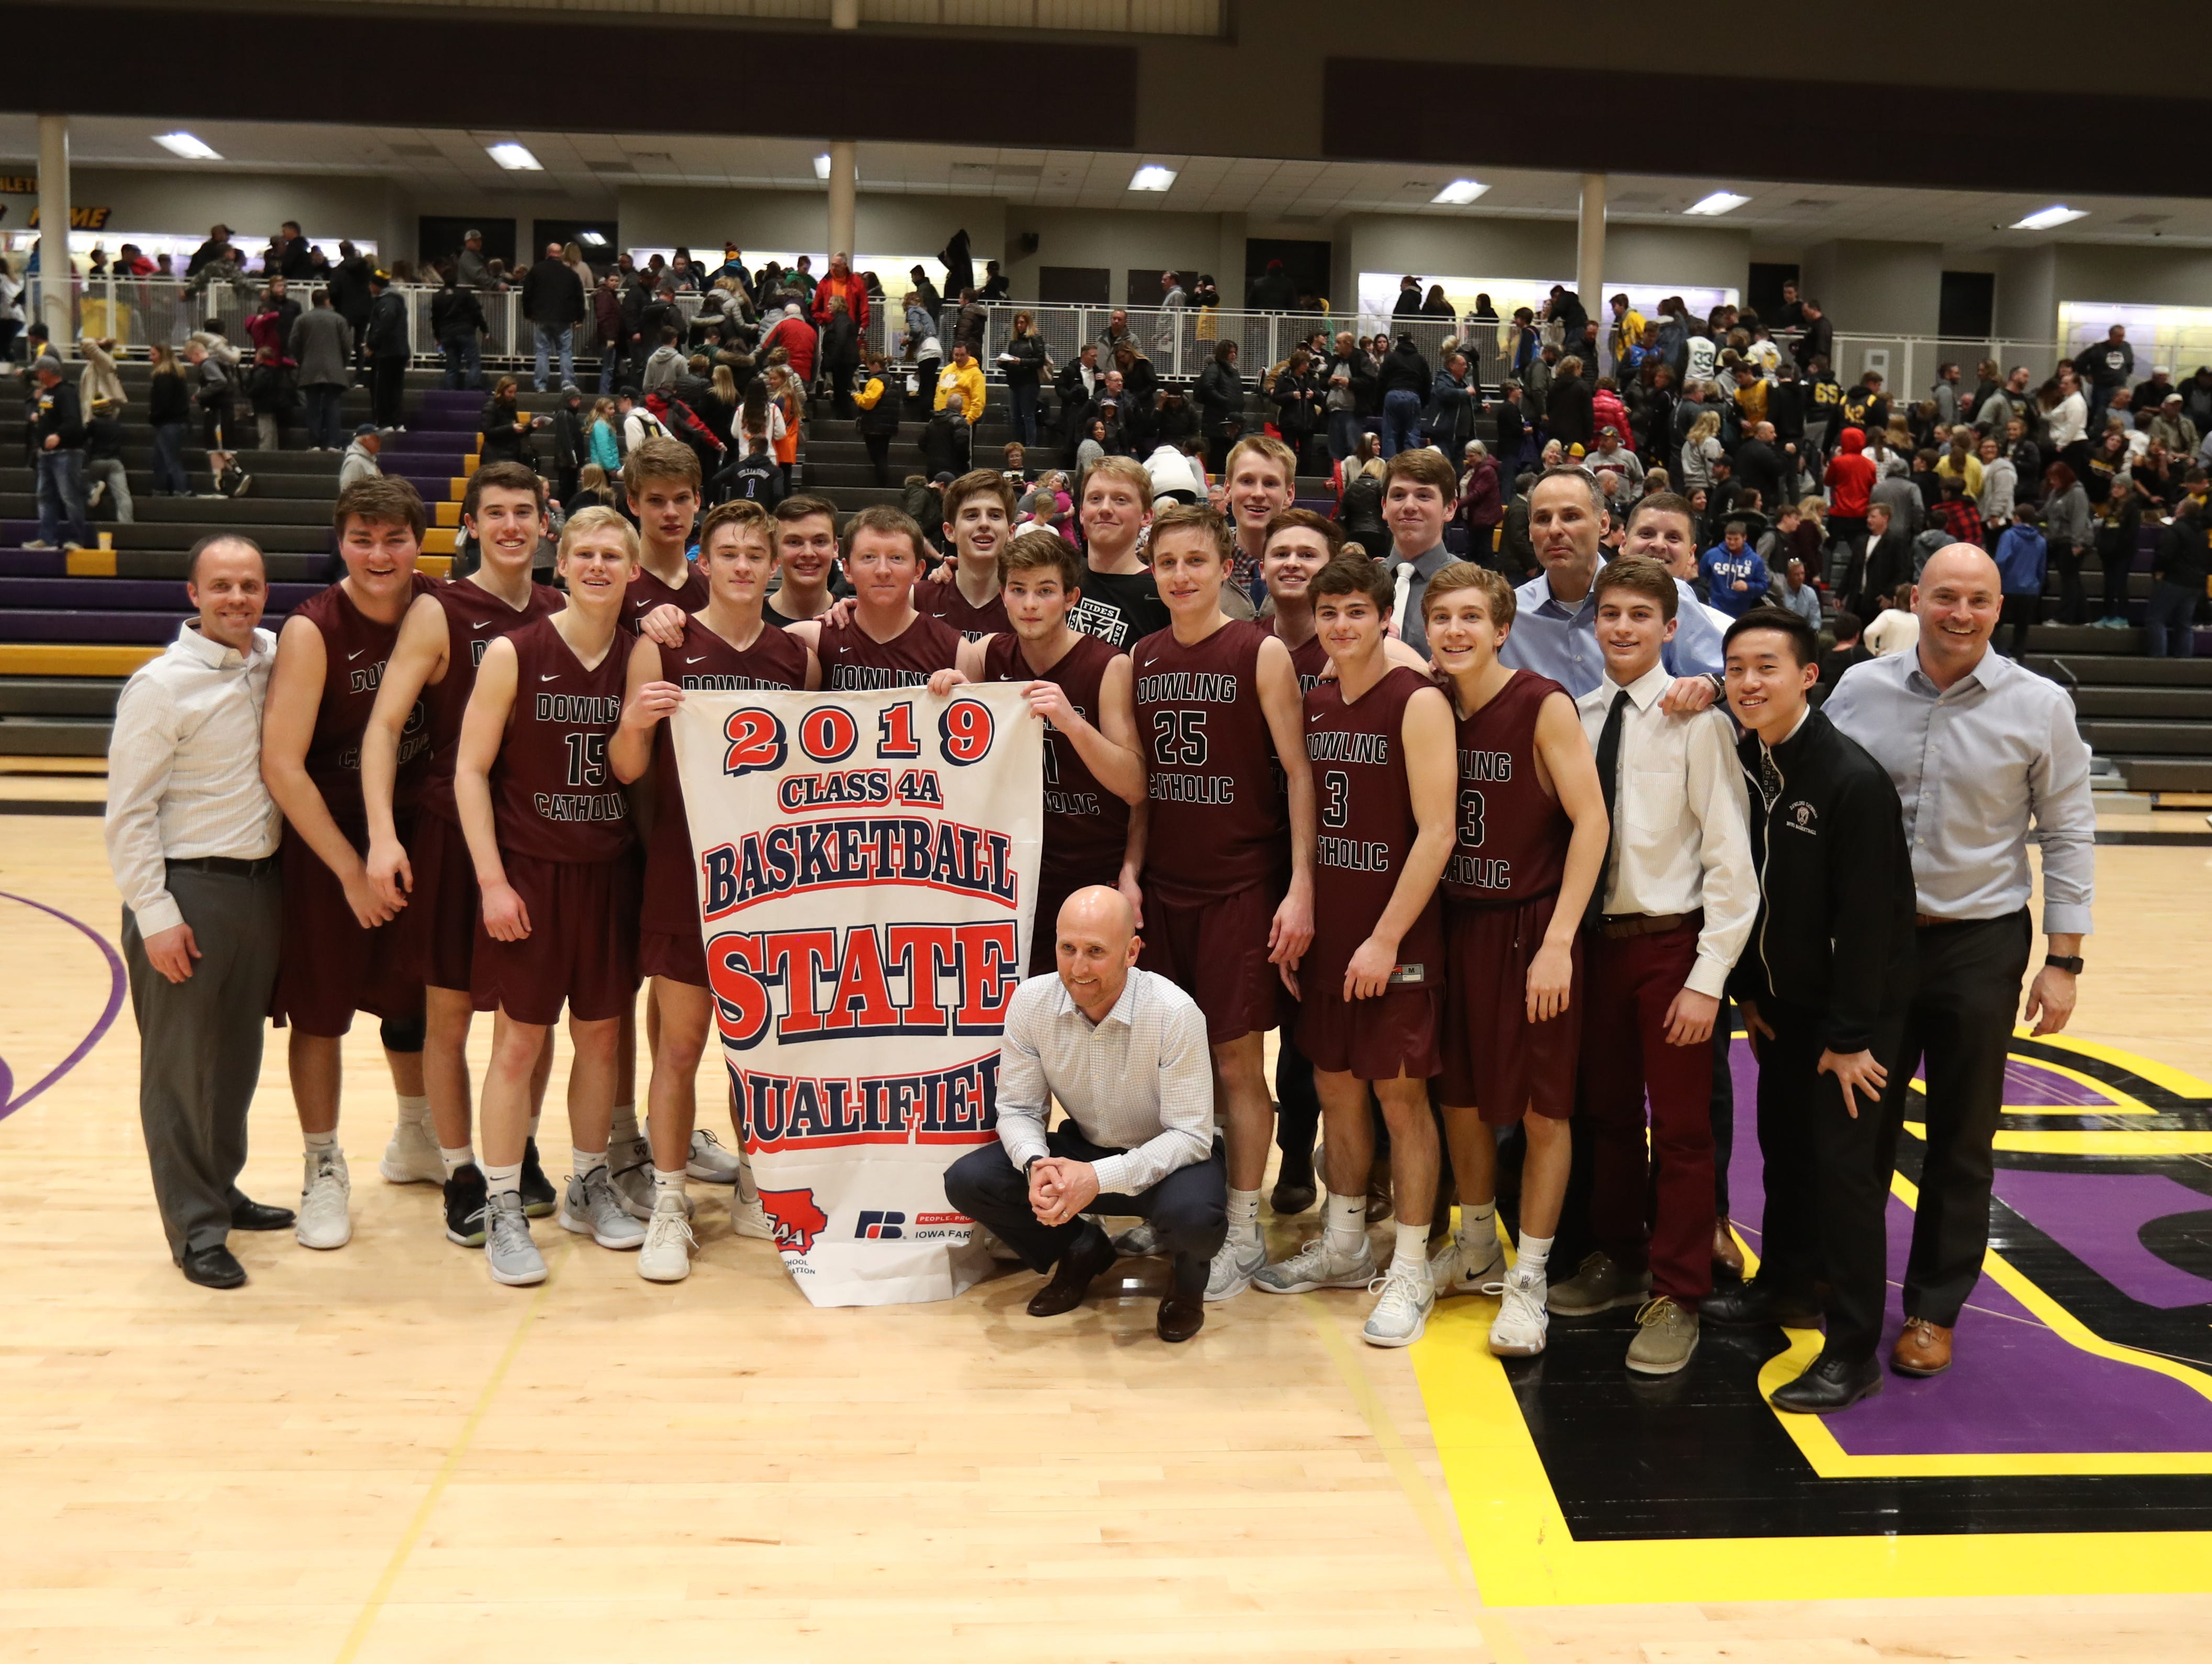 Dowling Catholic players gather after qualifying for the 2019 state basketball tournament after beating Southeast Polk at Johnston High School in Johnston, Iowa, on Tuesday, Feb. 26, 2019.